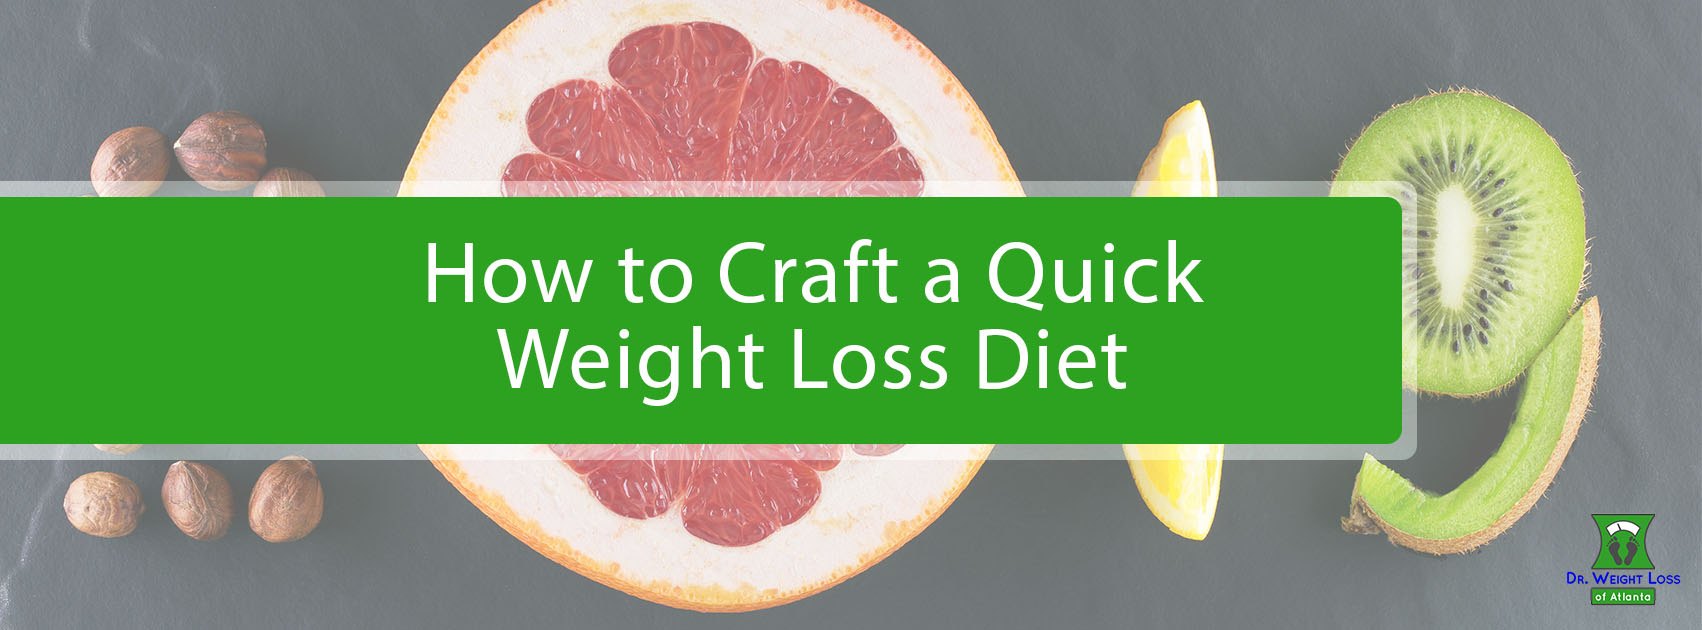 Weigh loss foods including grapefruit, lemon, and kiwi.